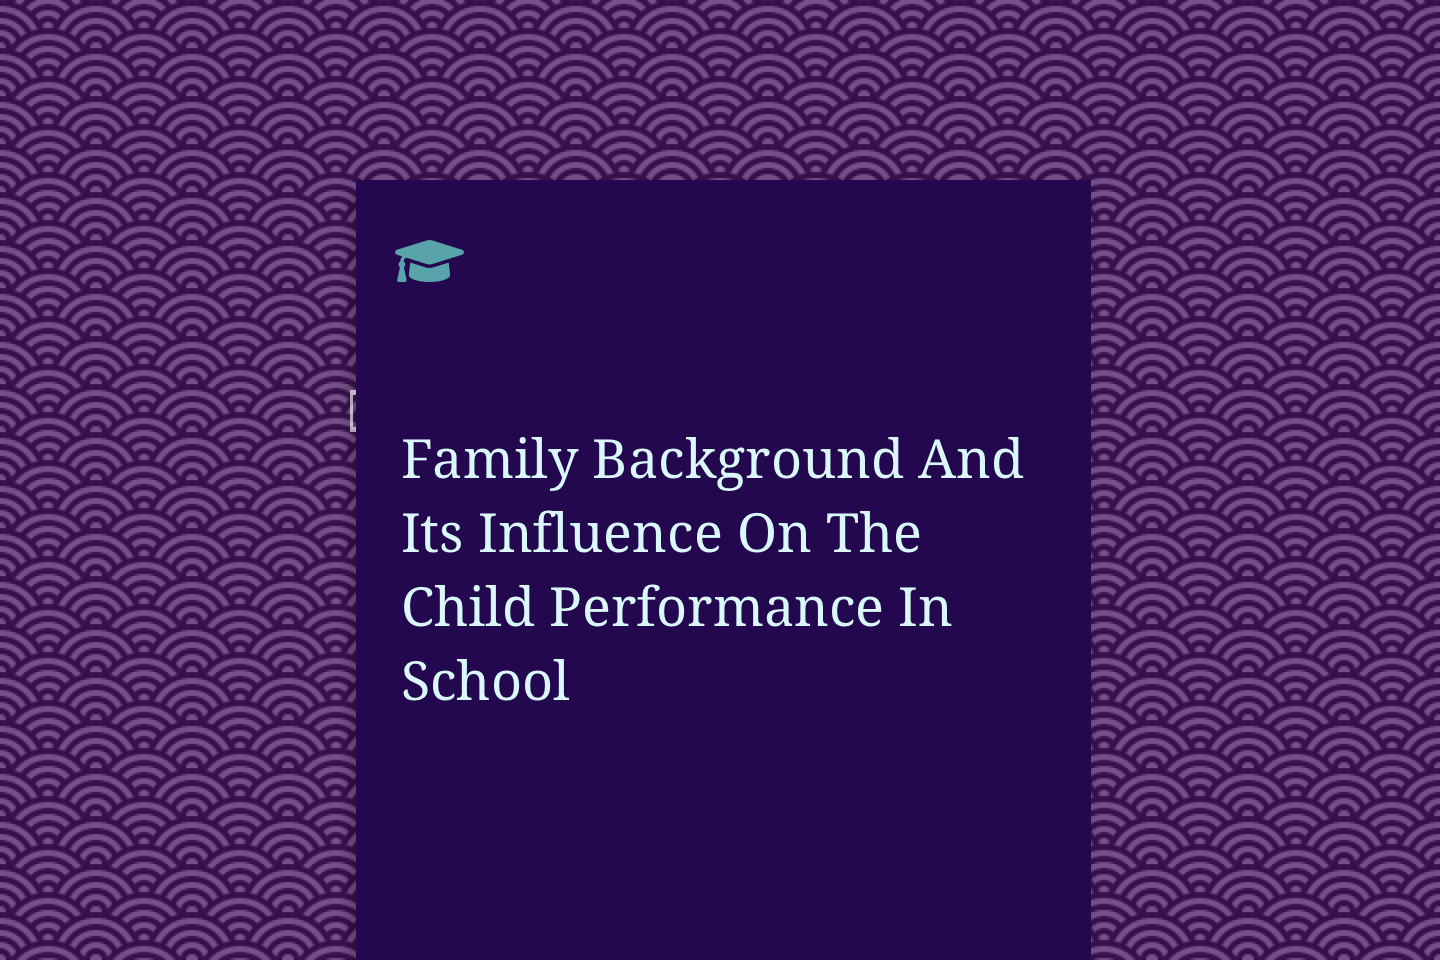 Family Background And Its Influence On The Child Performance In School